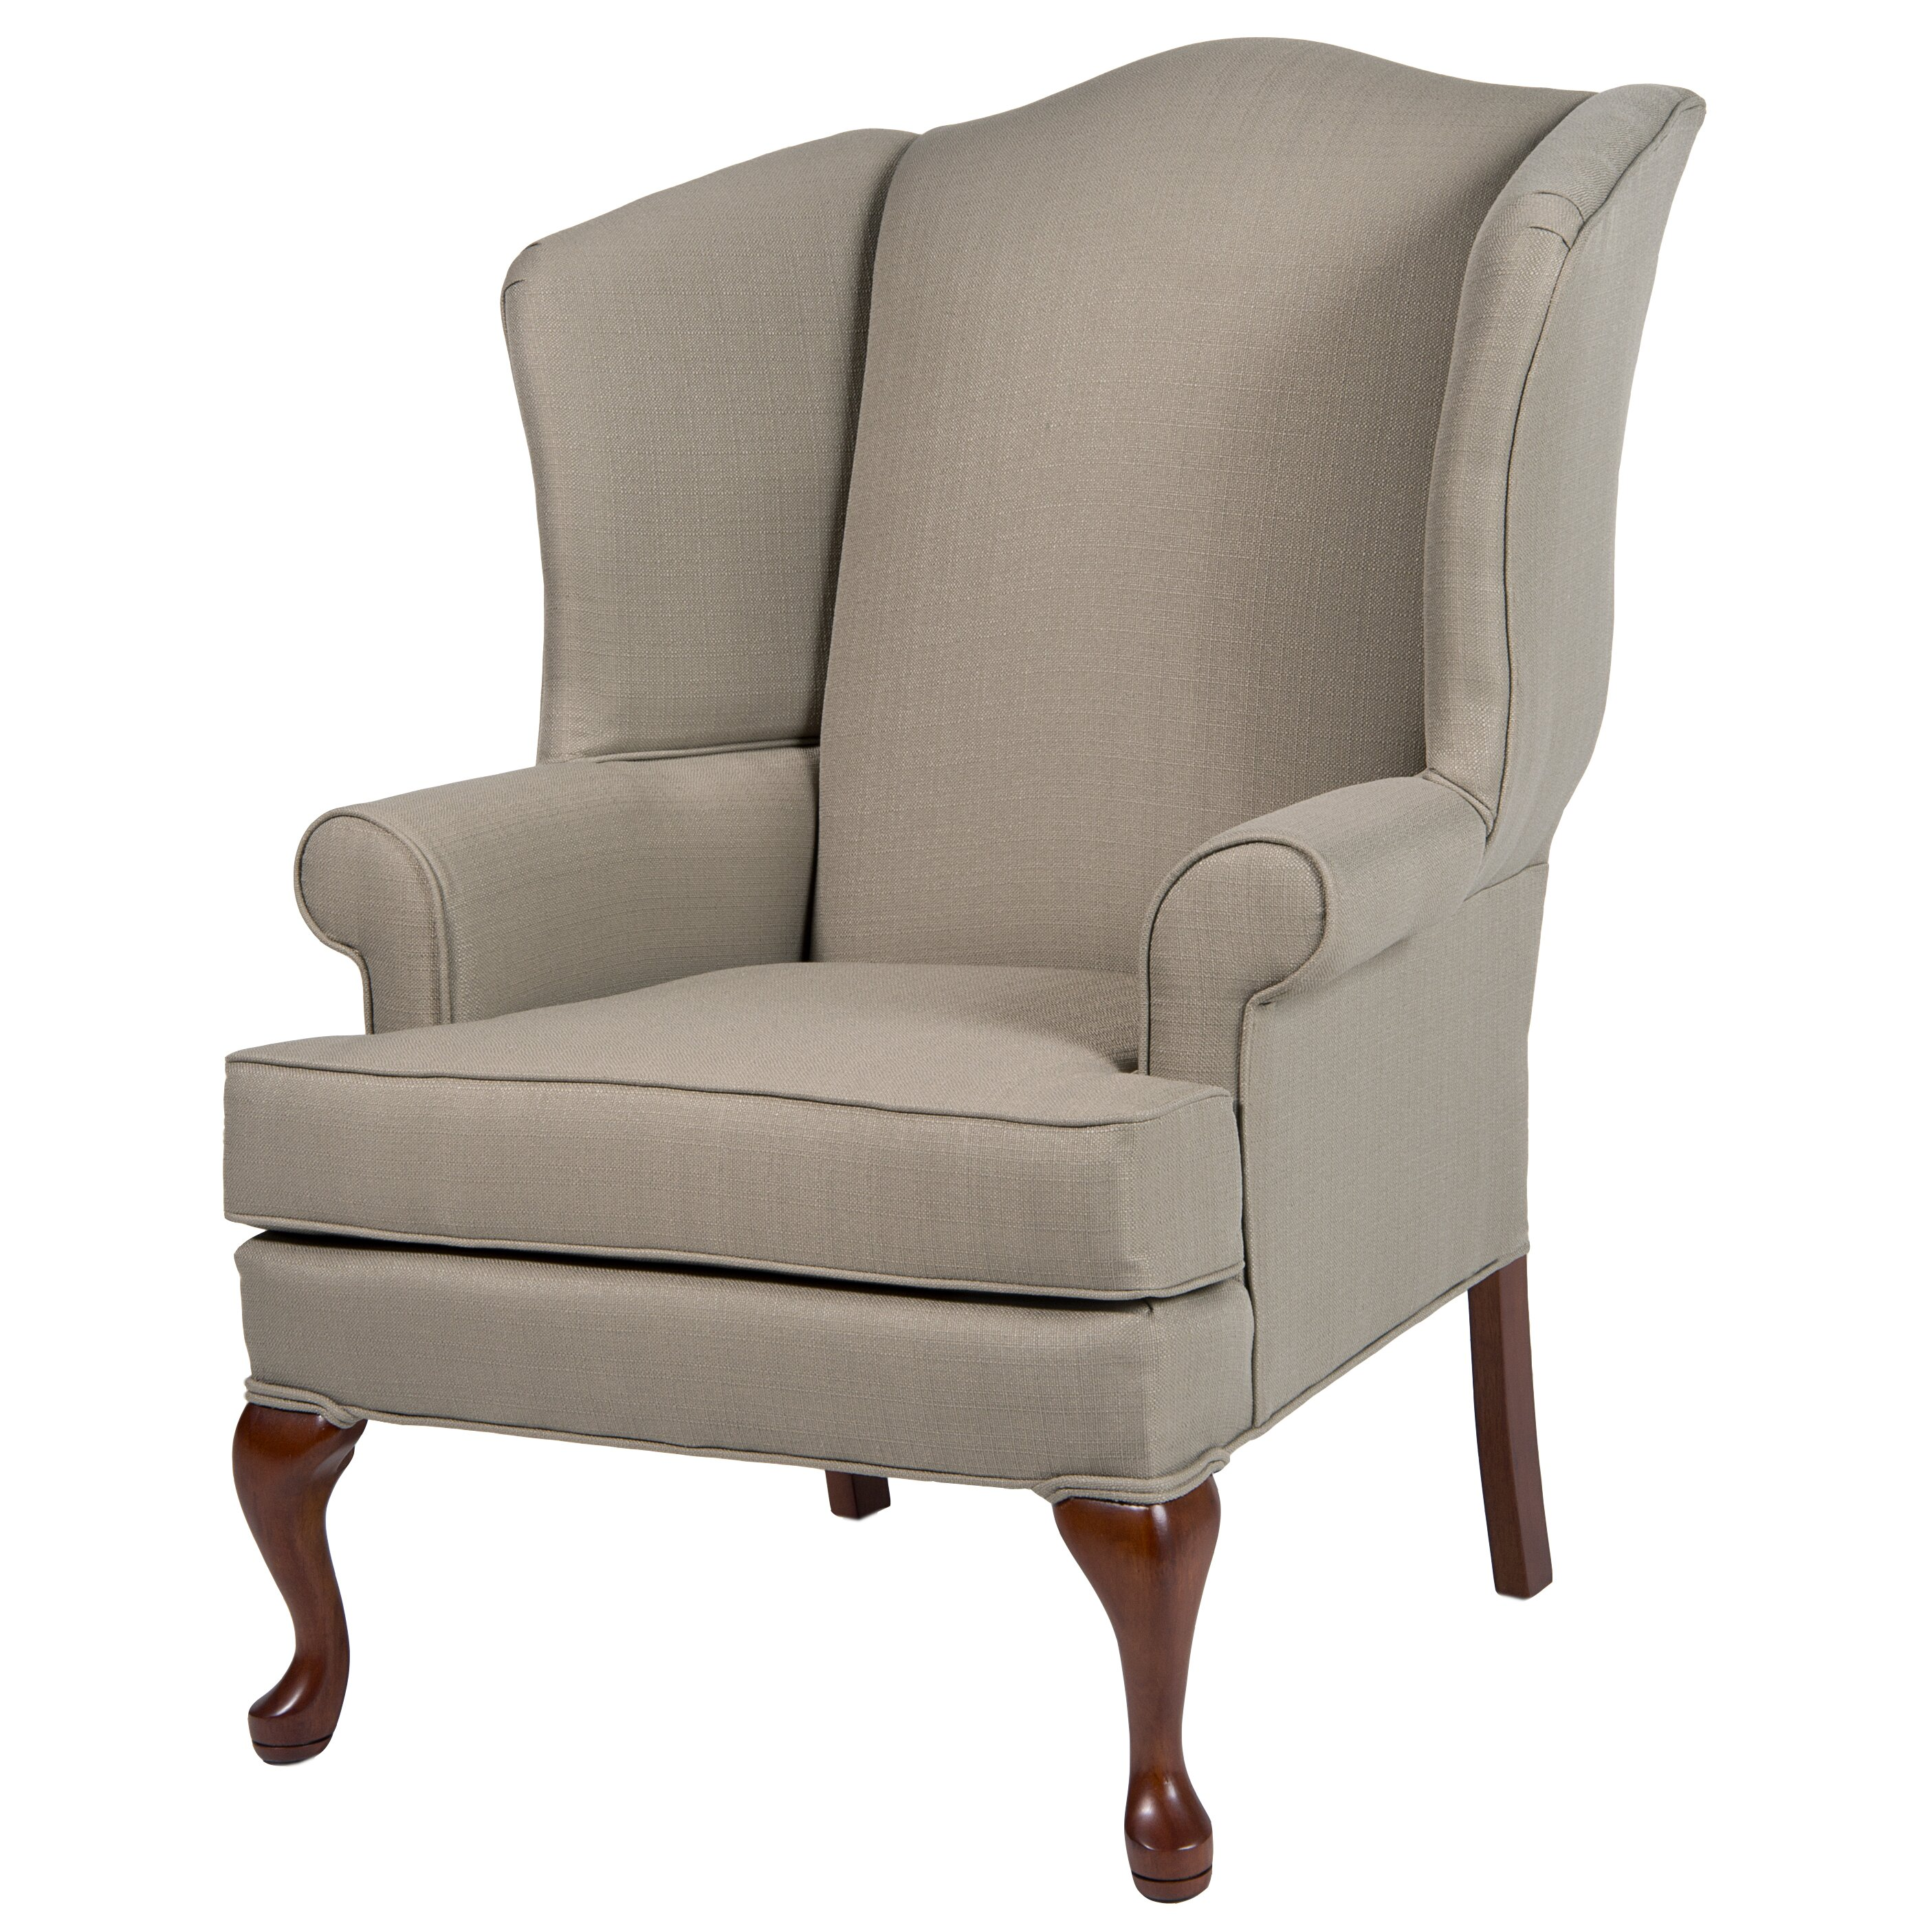 Comfort pointe erin wing back chair reviews wayfair for Wing back dining chairs